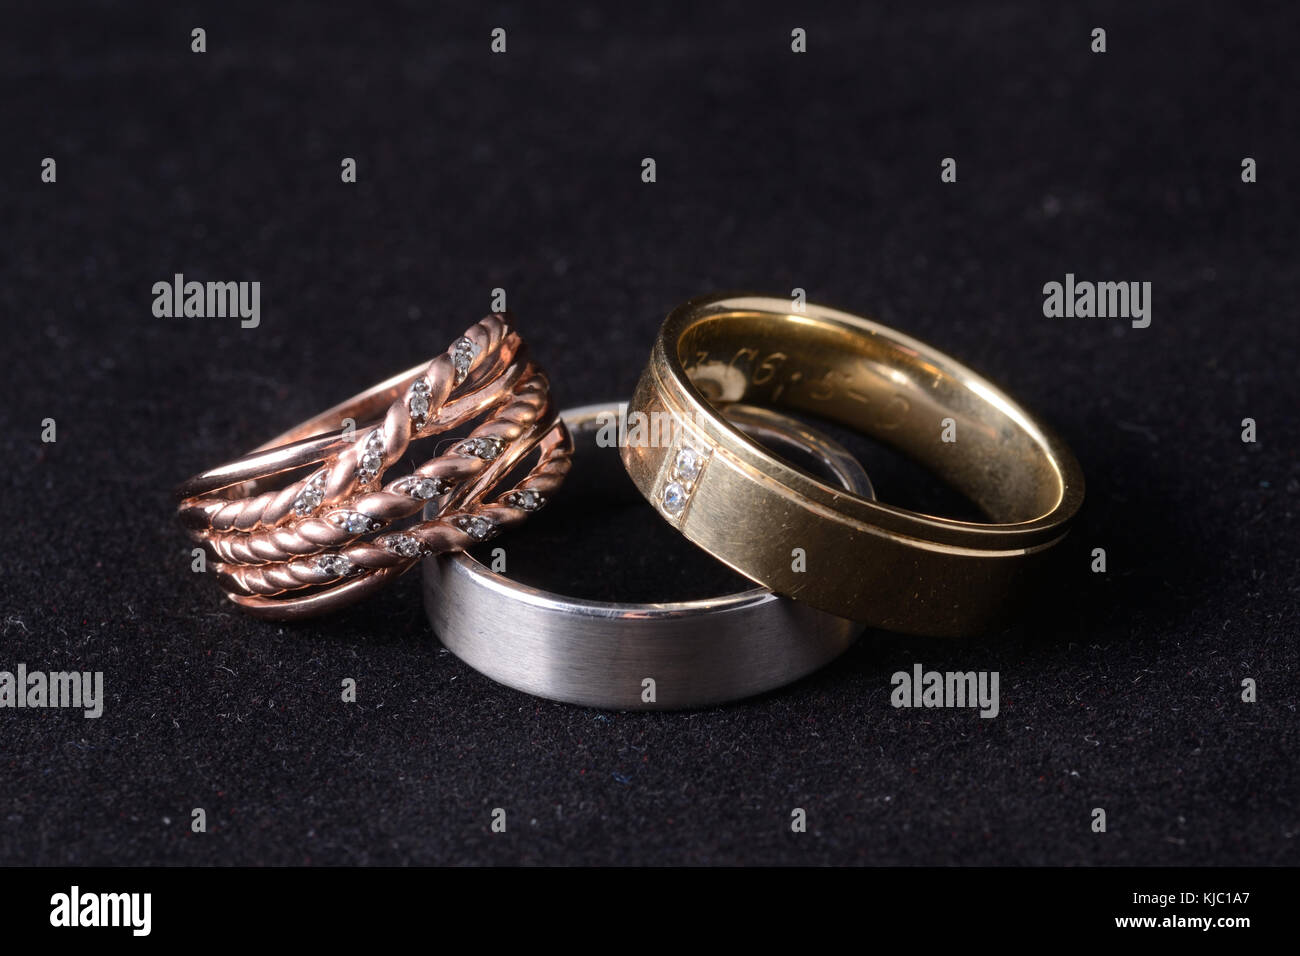 selection of rings in rose, white and yellow gold - Stock Image